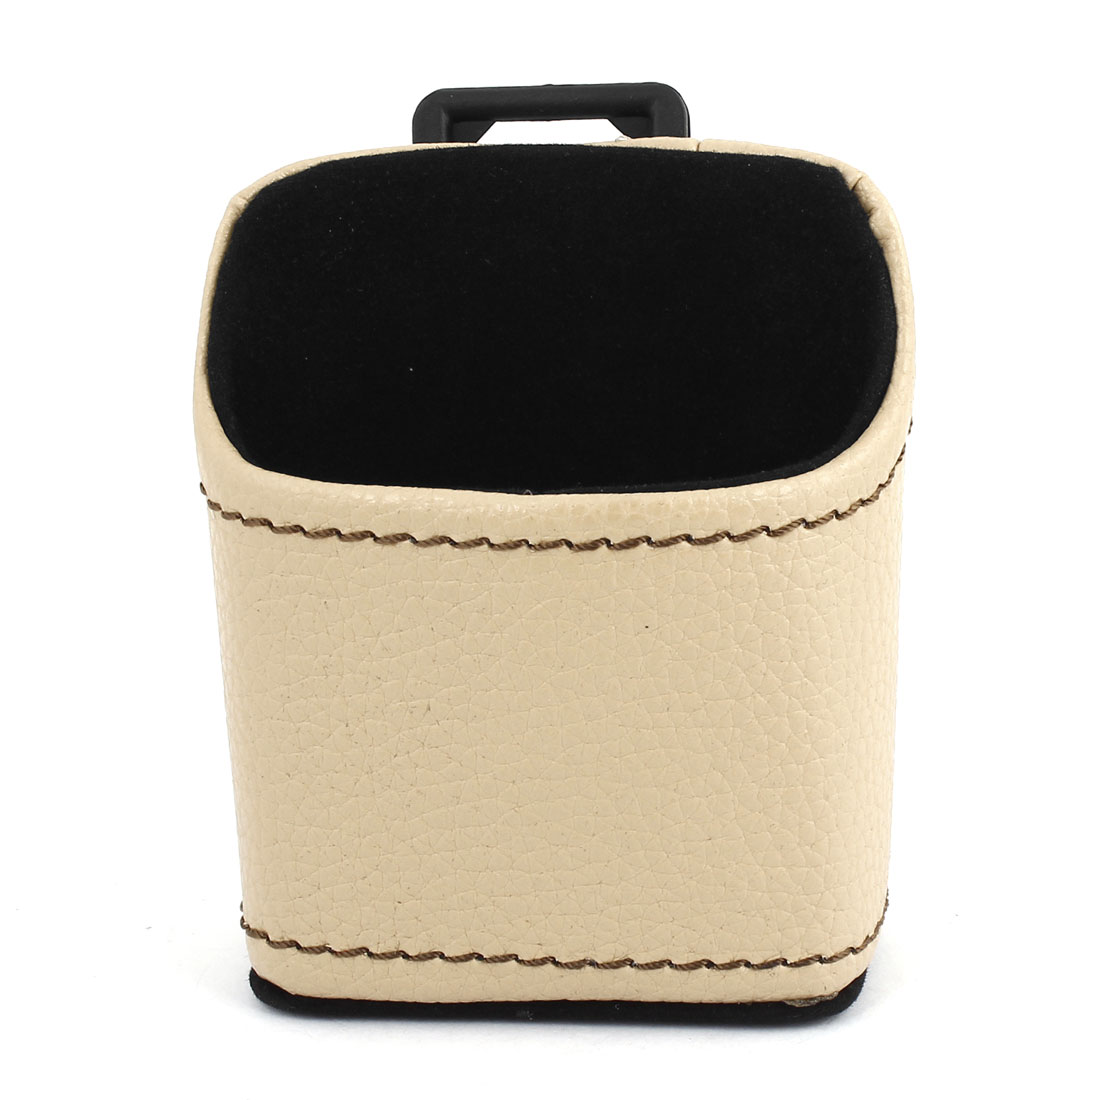 Beige Faux Leather Keys Phone Organizer Case Storage for Car Decoration